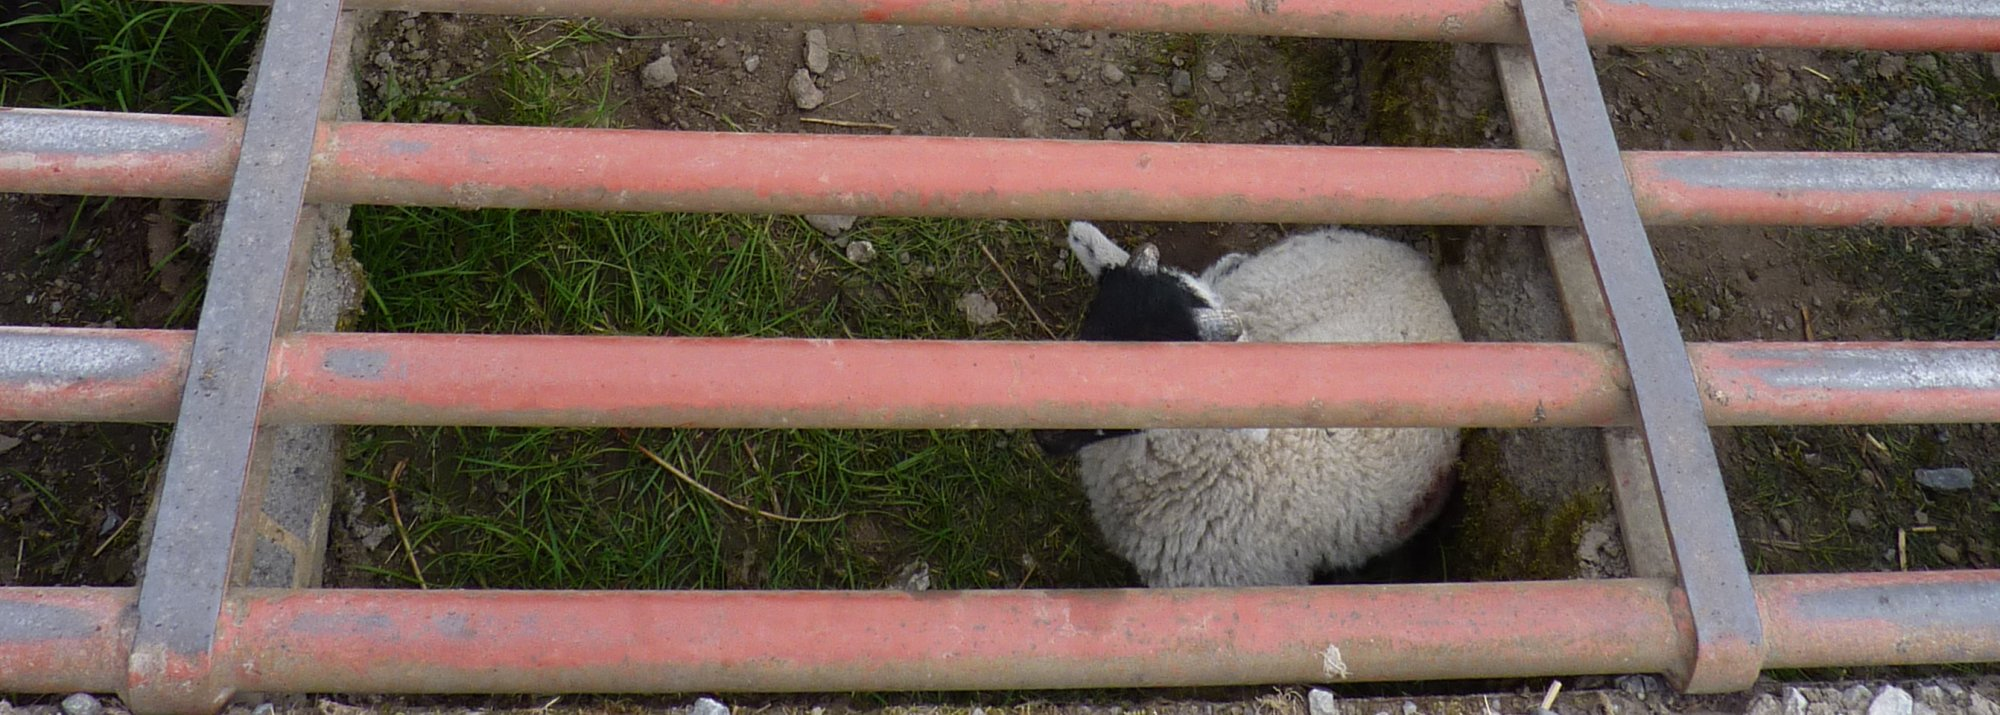 Lamb trapped in the cattle grid... again!